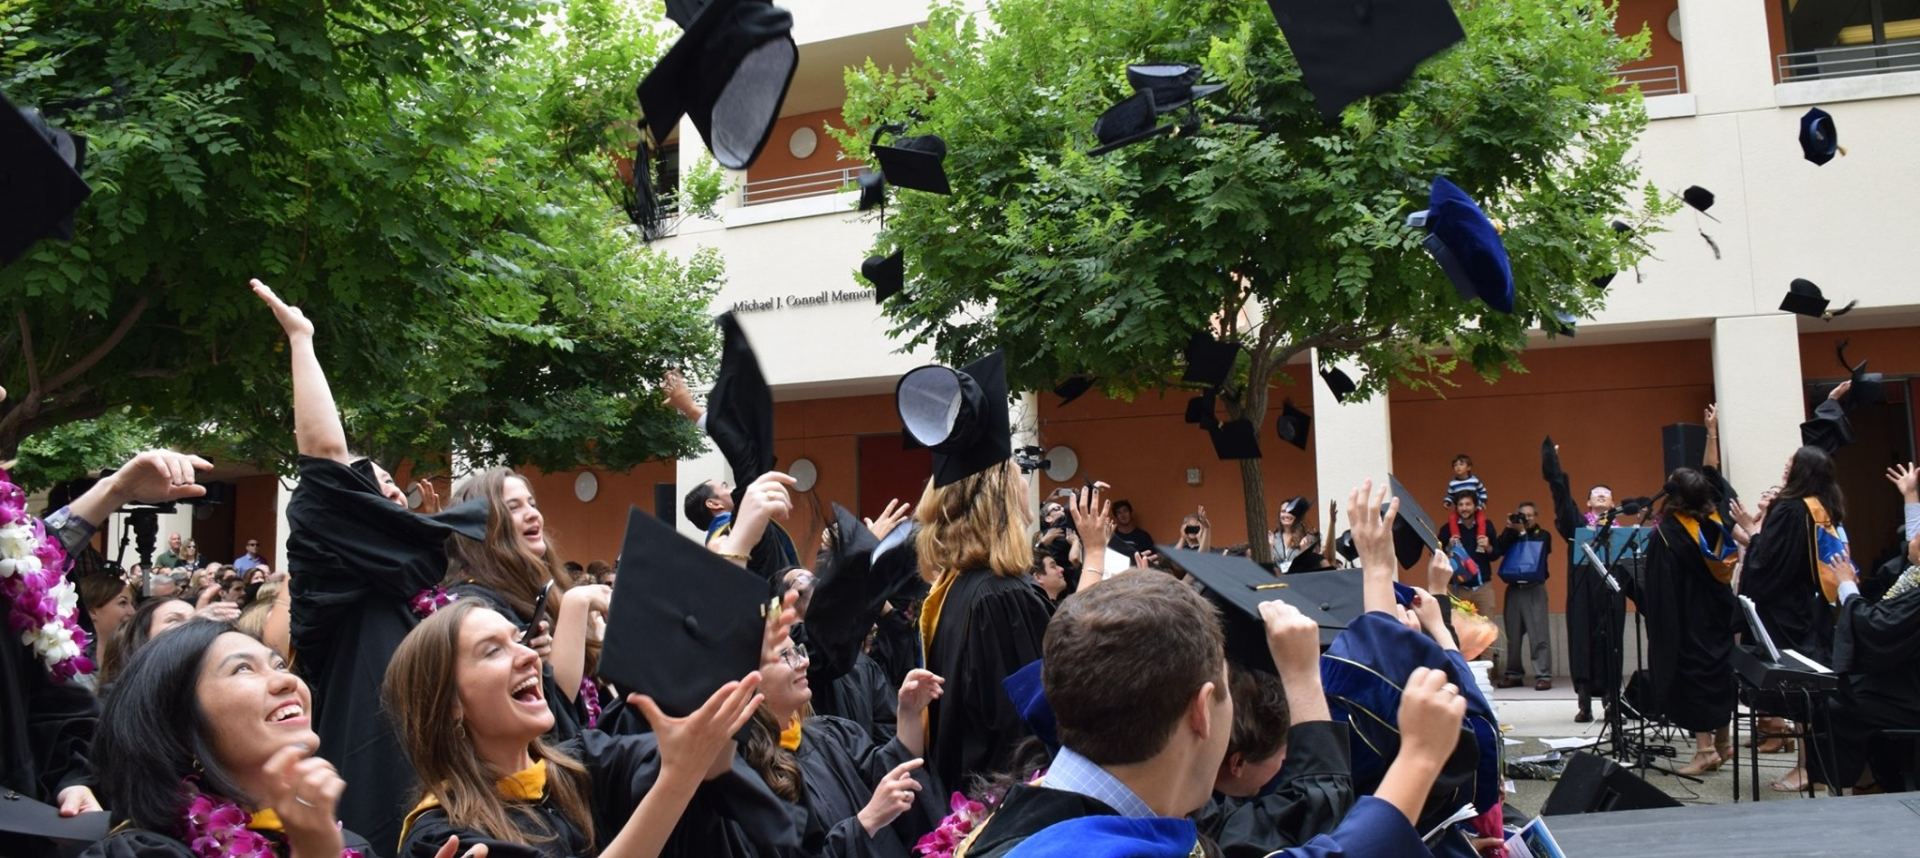 Grads throwing mortar board caps into the air